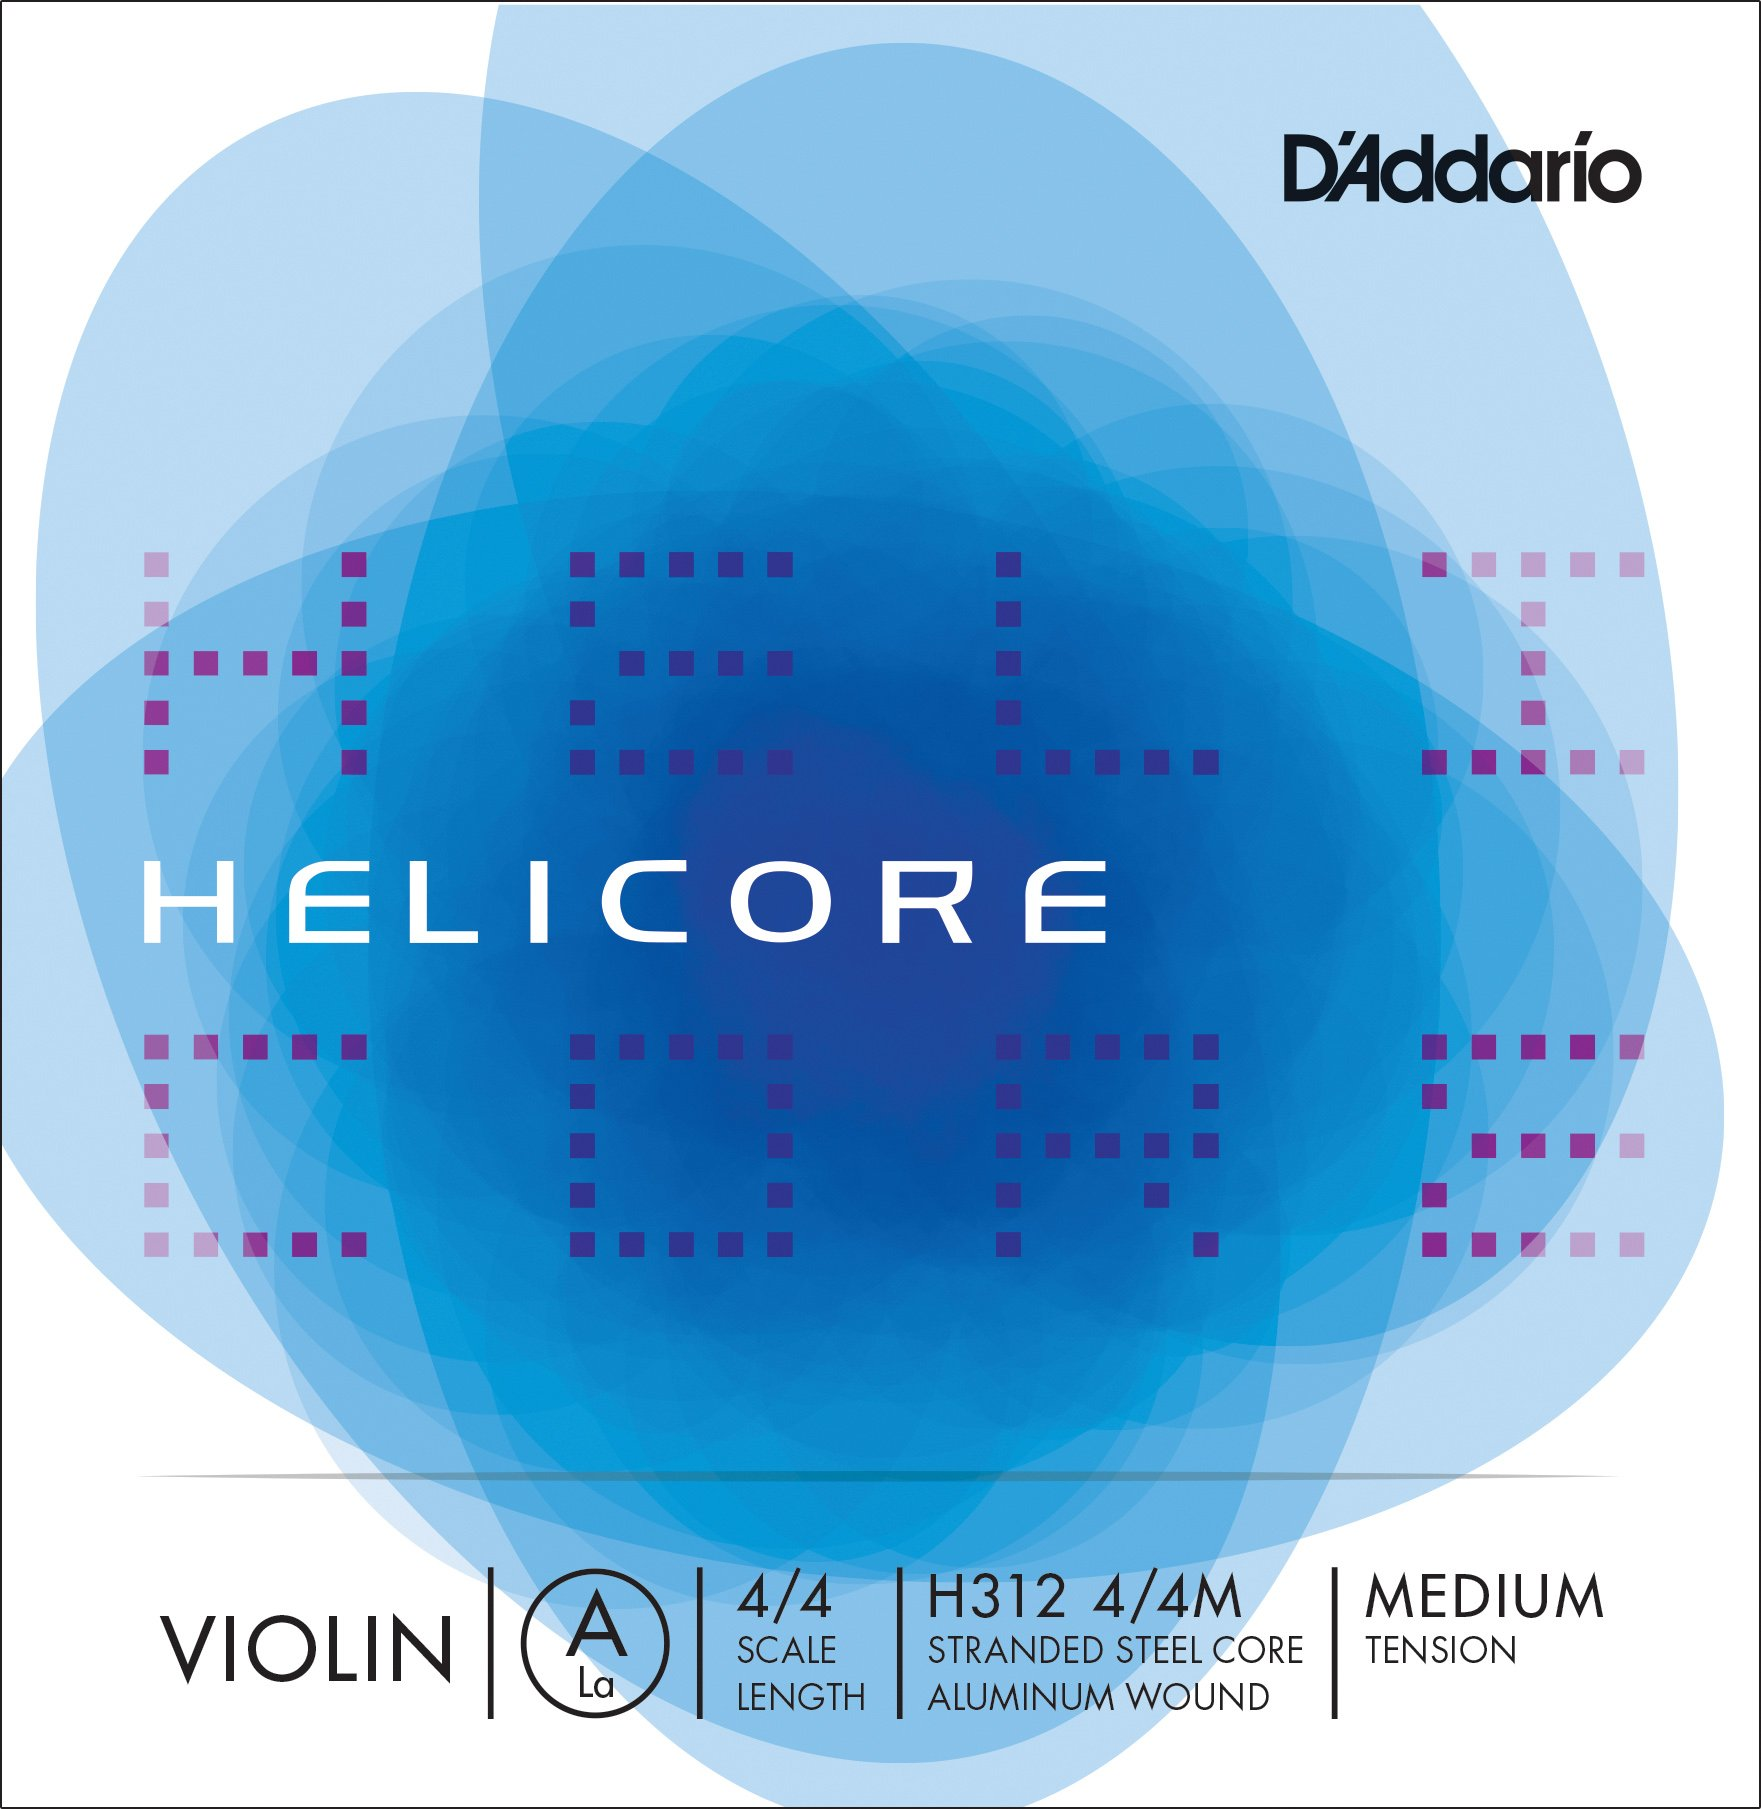 D'Addario Helicore Violin Single A String, 4/4 Scale, Medium Tension